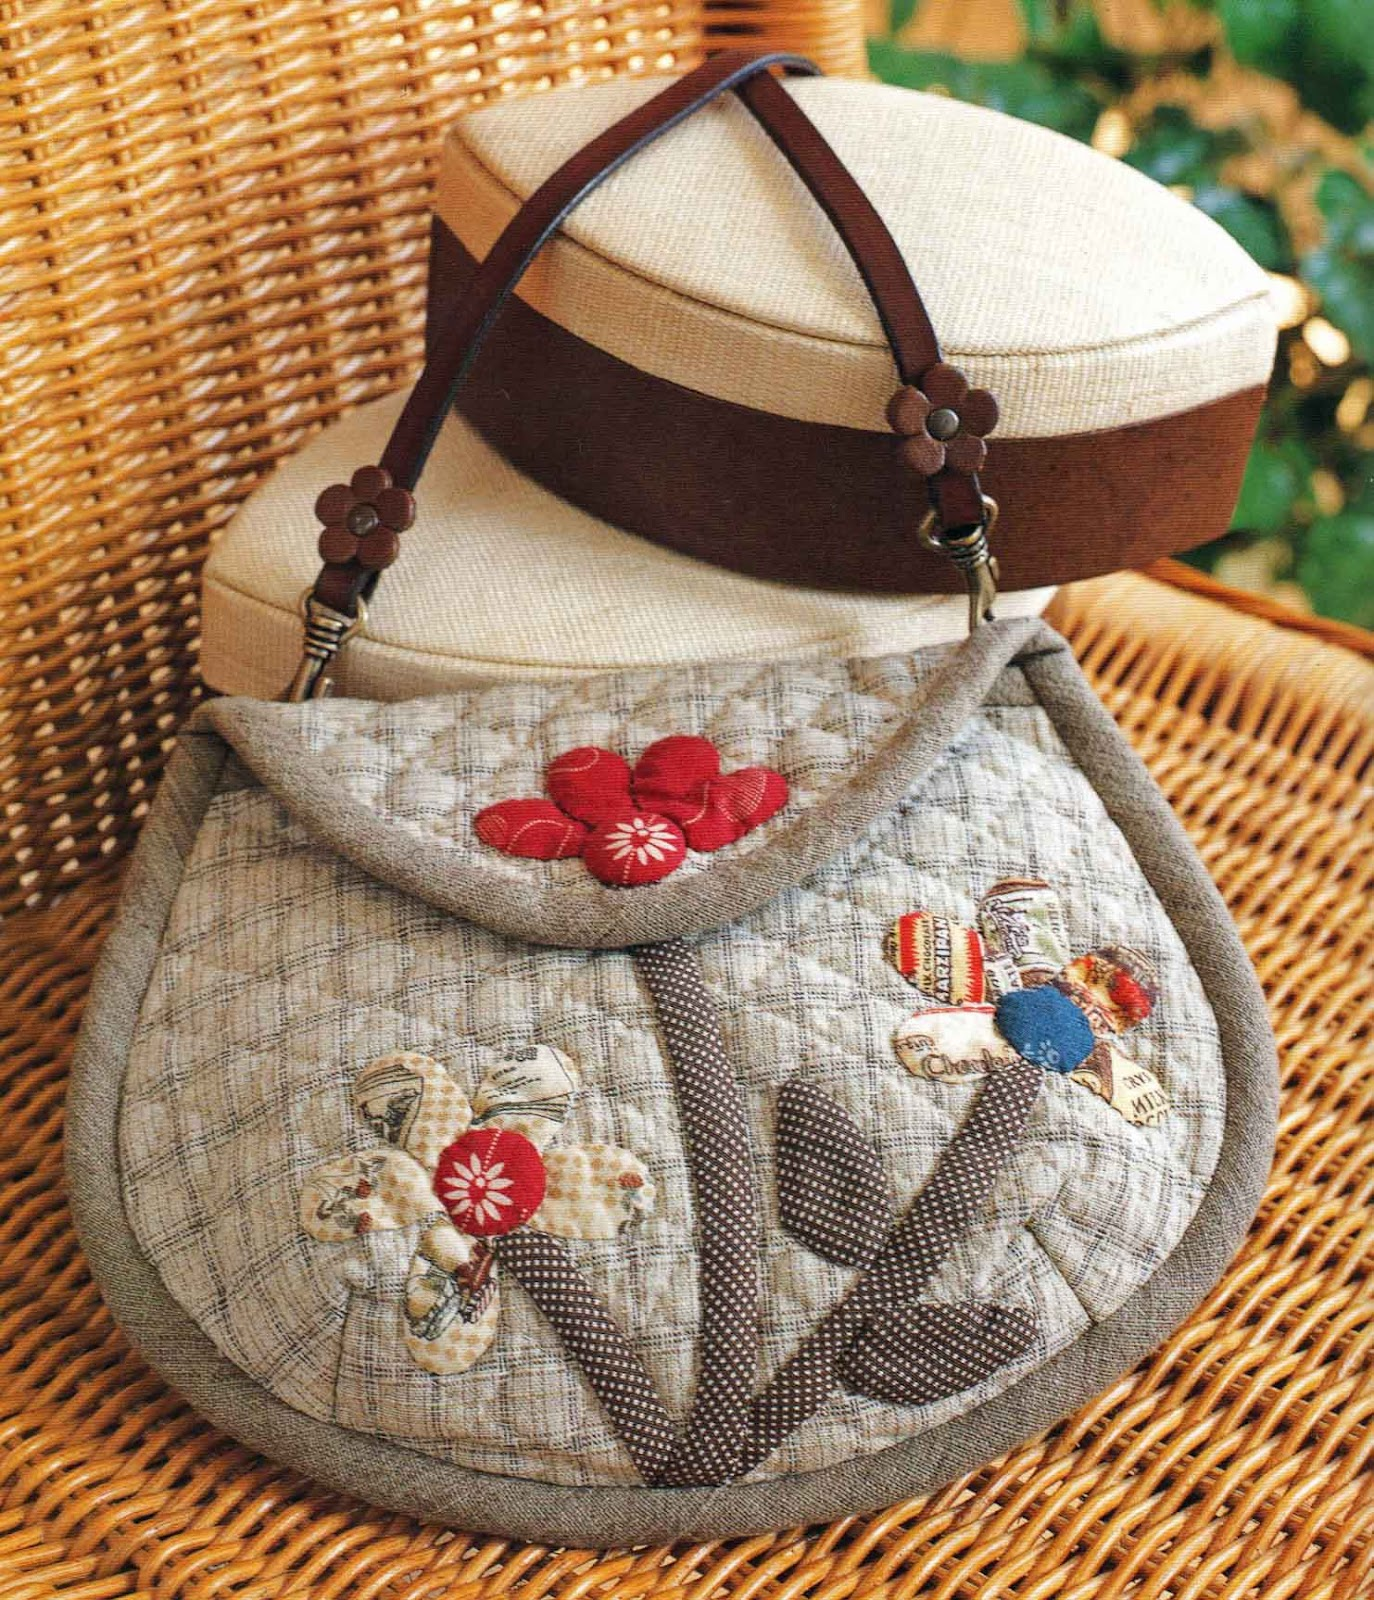 Quilting Patterns For Bags : Ulla s Quilt World: Quilt bag, dress with applique flower